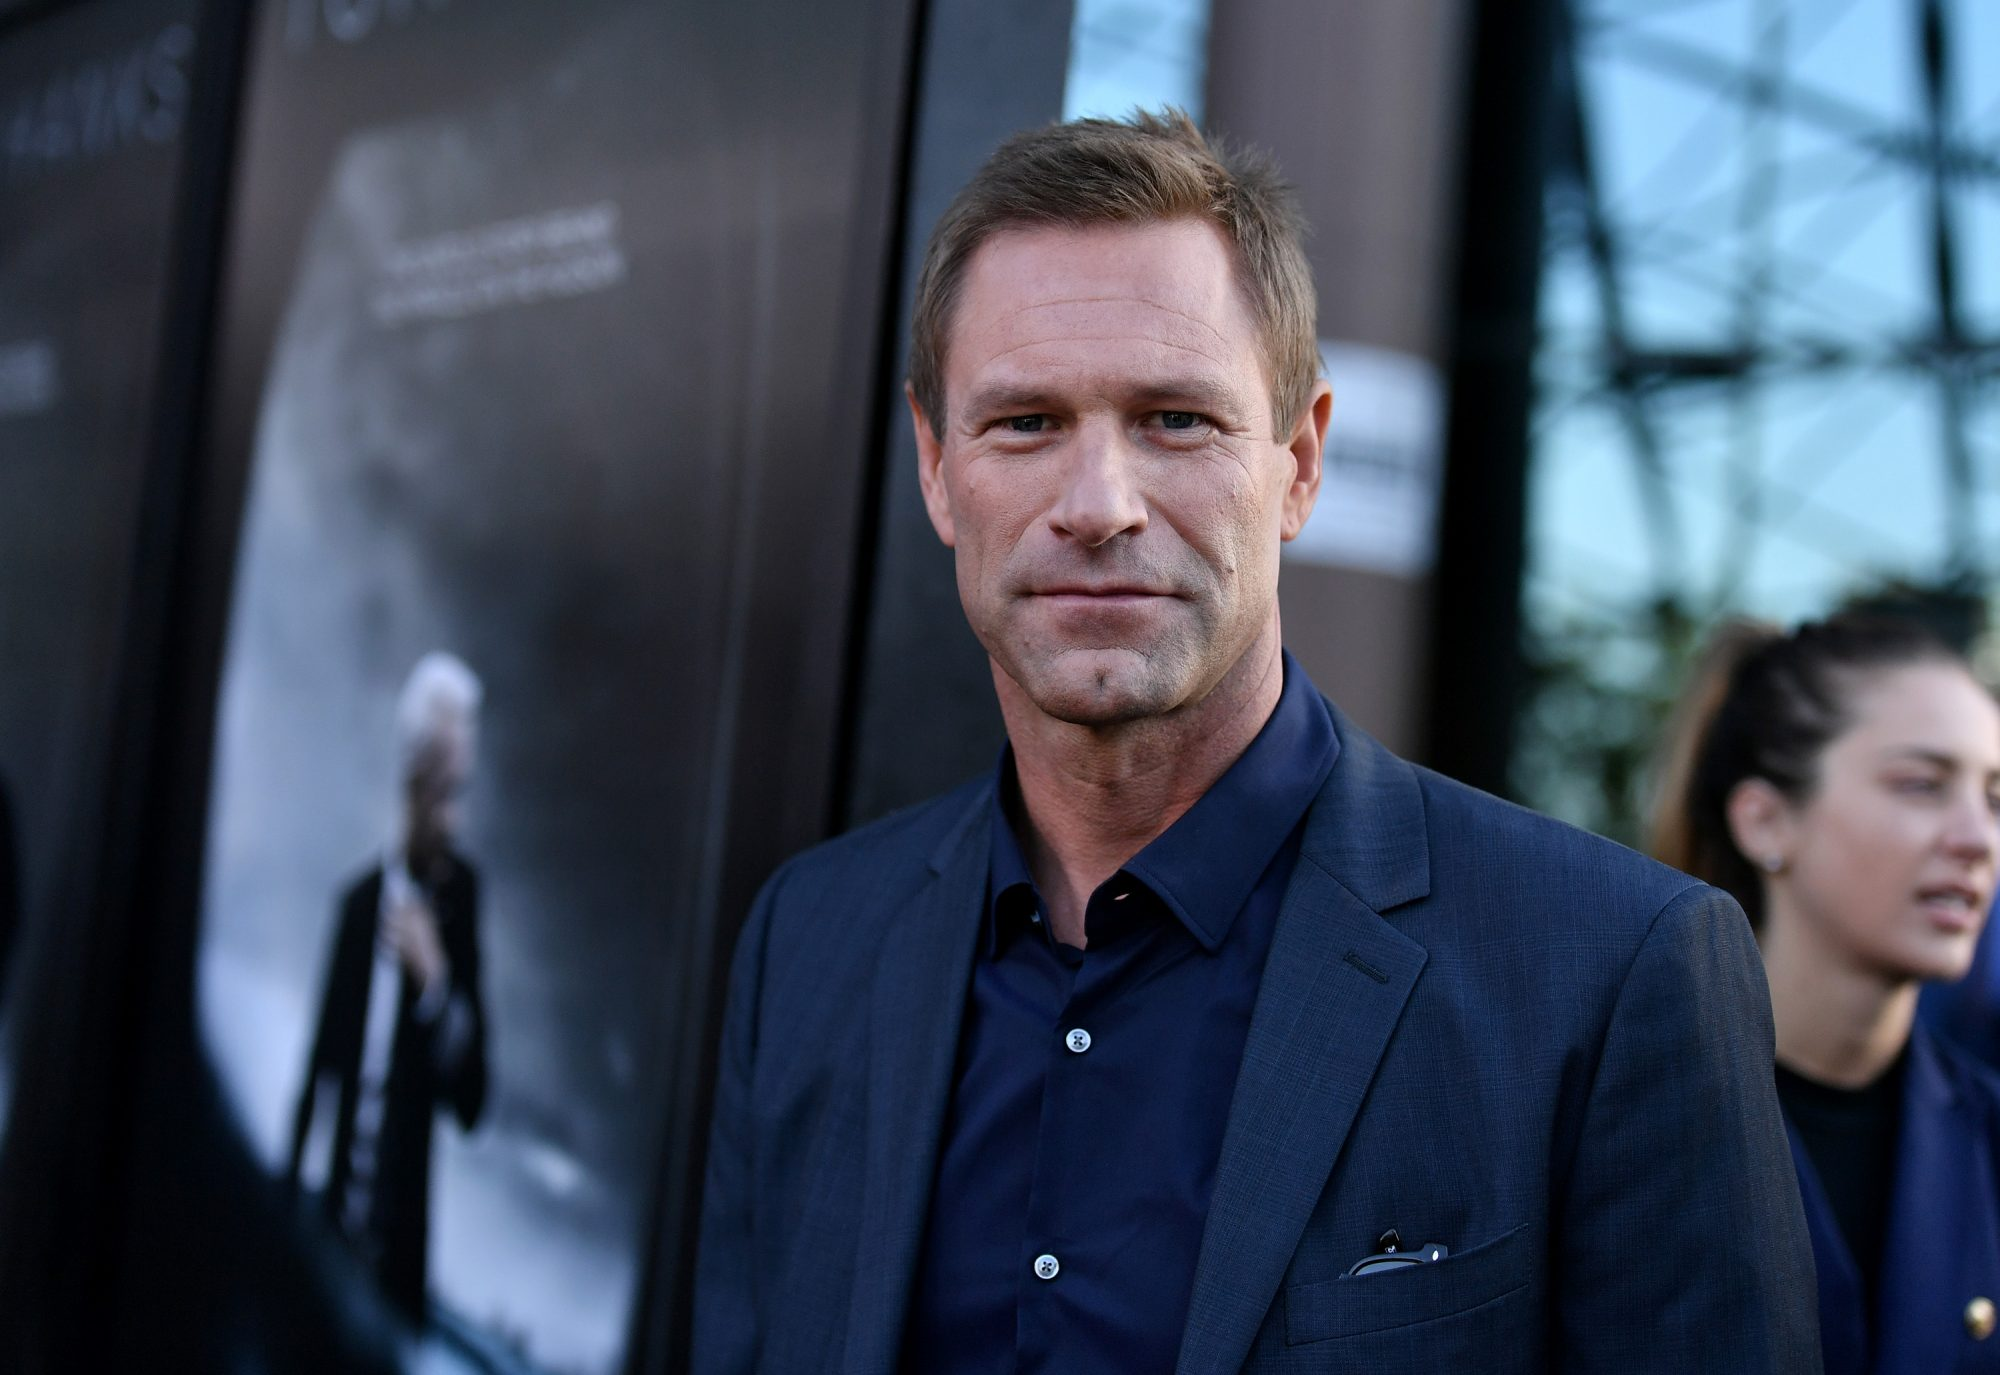 Aaron Eckhart to Play Gerald Ford in Showtime Series 'The First Lady' -  Variety